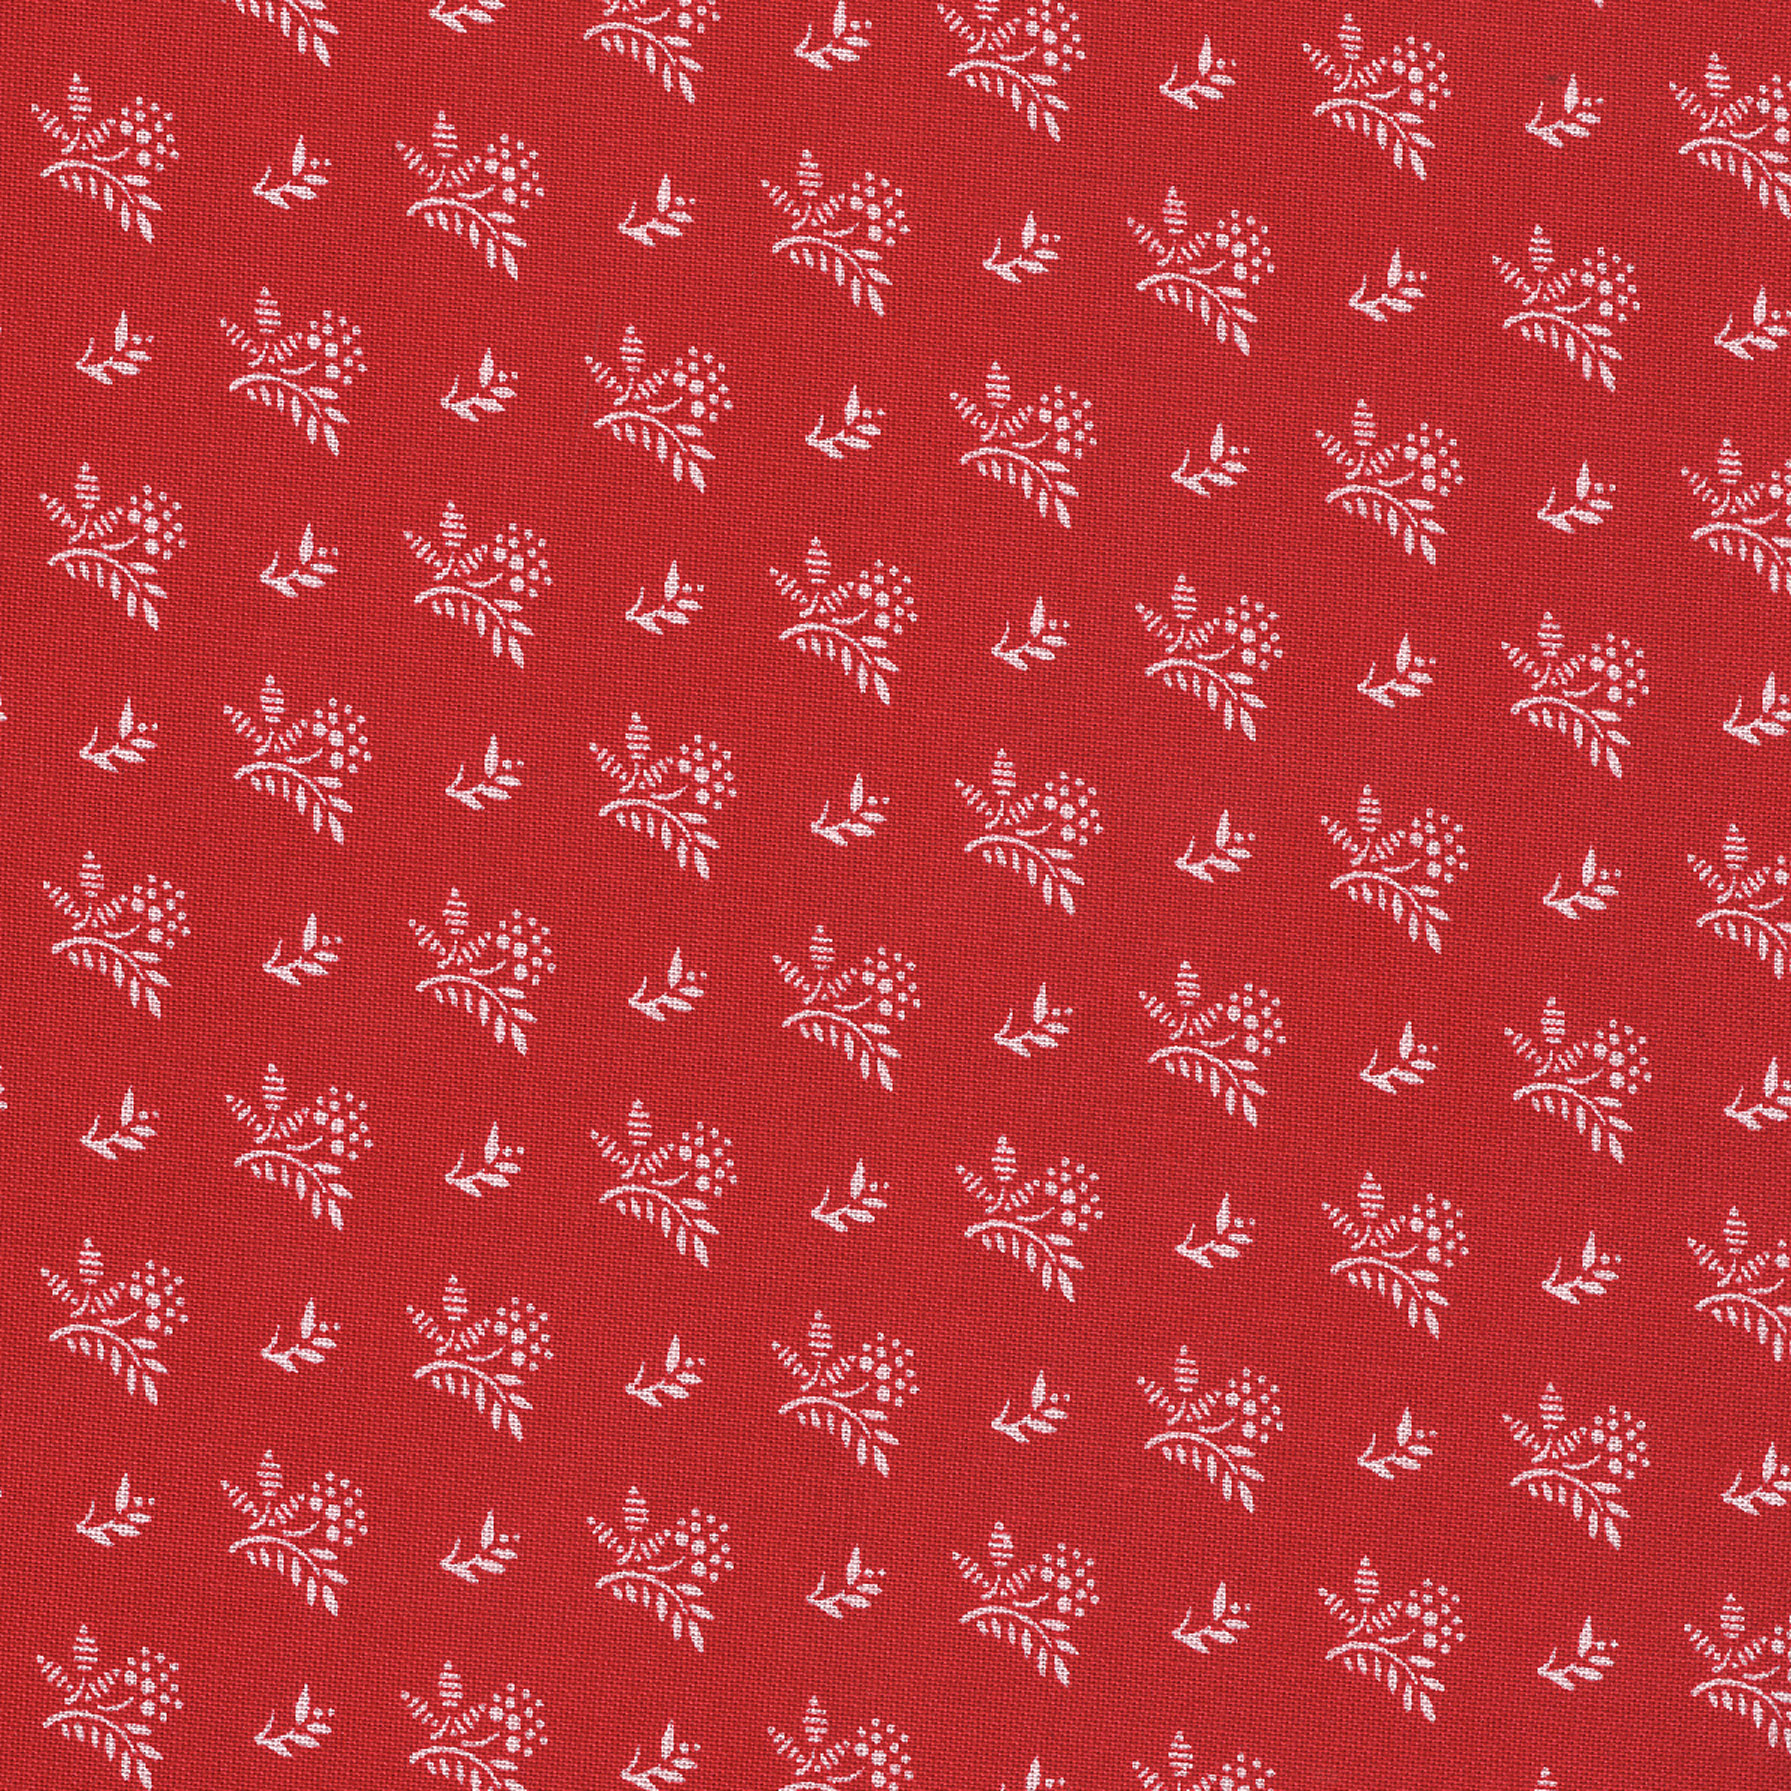 SHASON TEXTILE (3 Yards cut) 100% COTTON PRINT QUILTING FABRIC, RED / WHITE MINI BOUQUET